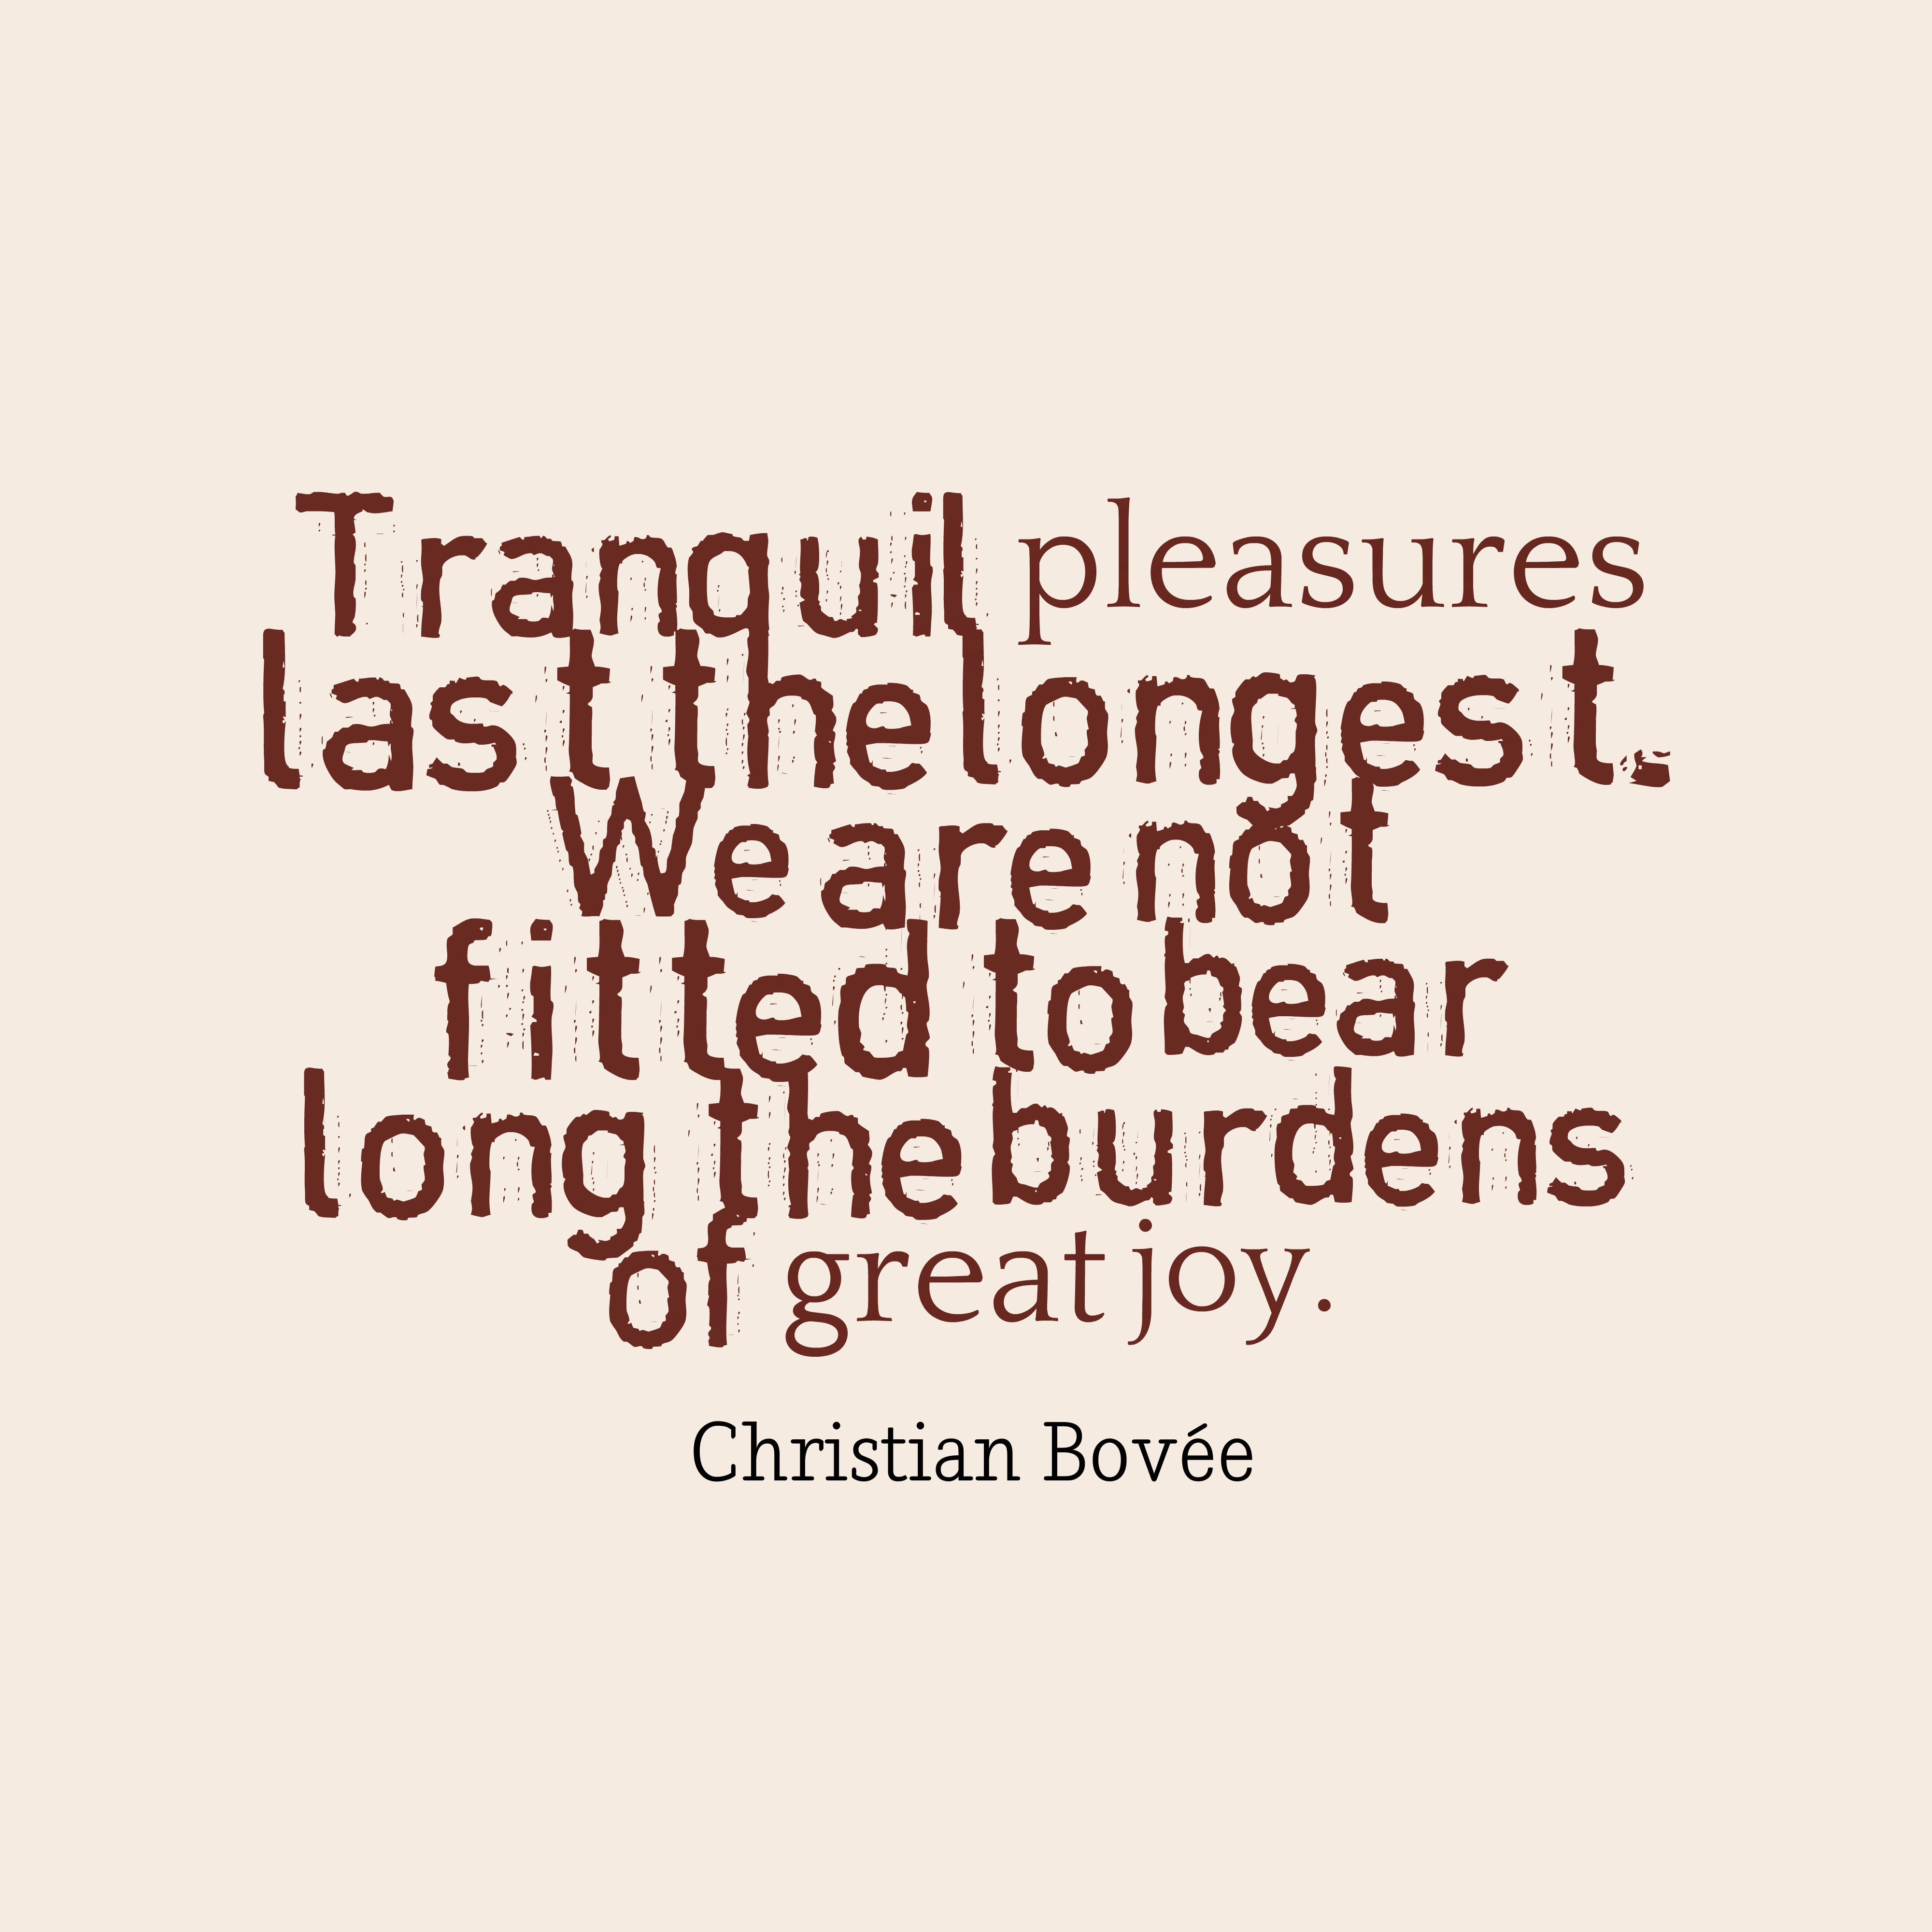 Quotes image of Tranquil pleasures last the longest. We are not fitted to bear long the burdens of great joy.